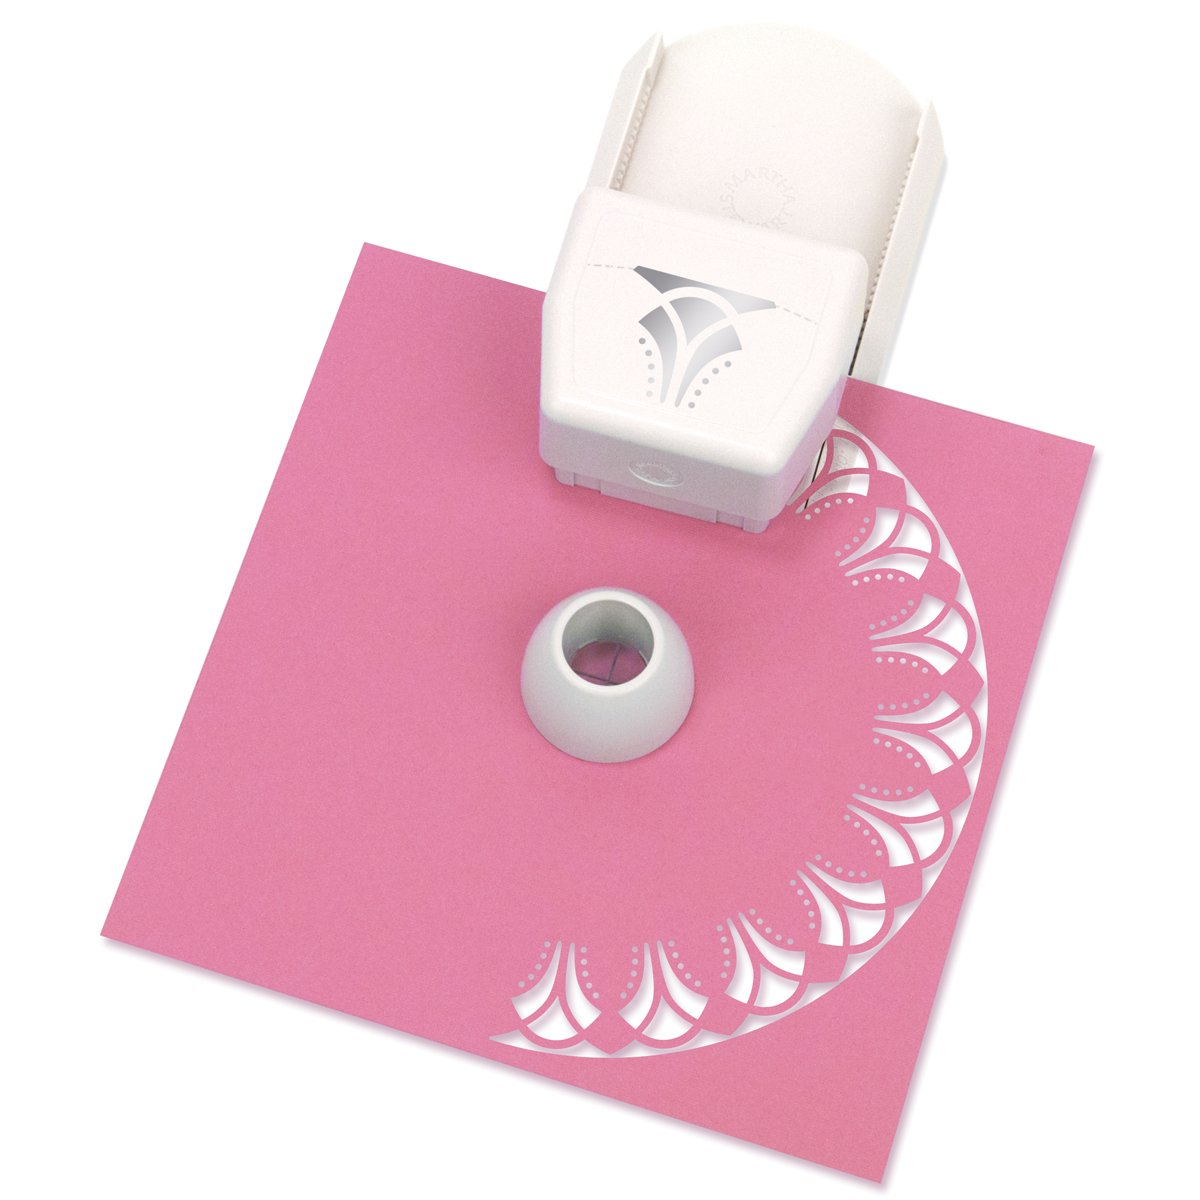 Cheap Paper Flower Punch Find Paper Flower Punch Deals On Line At